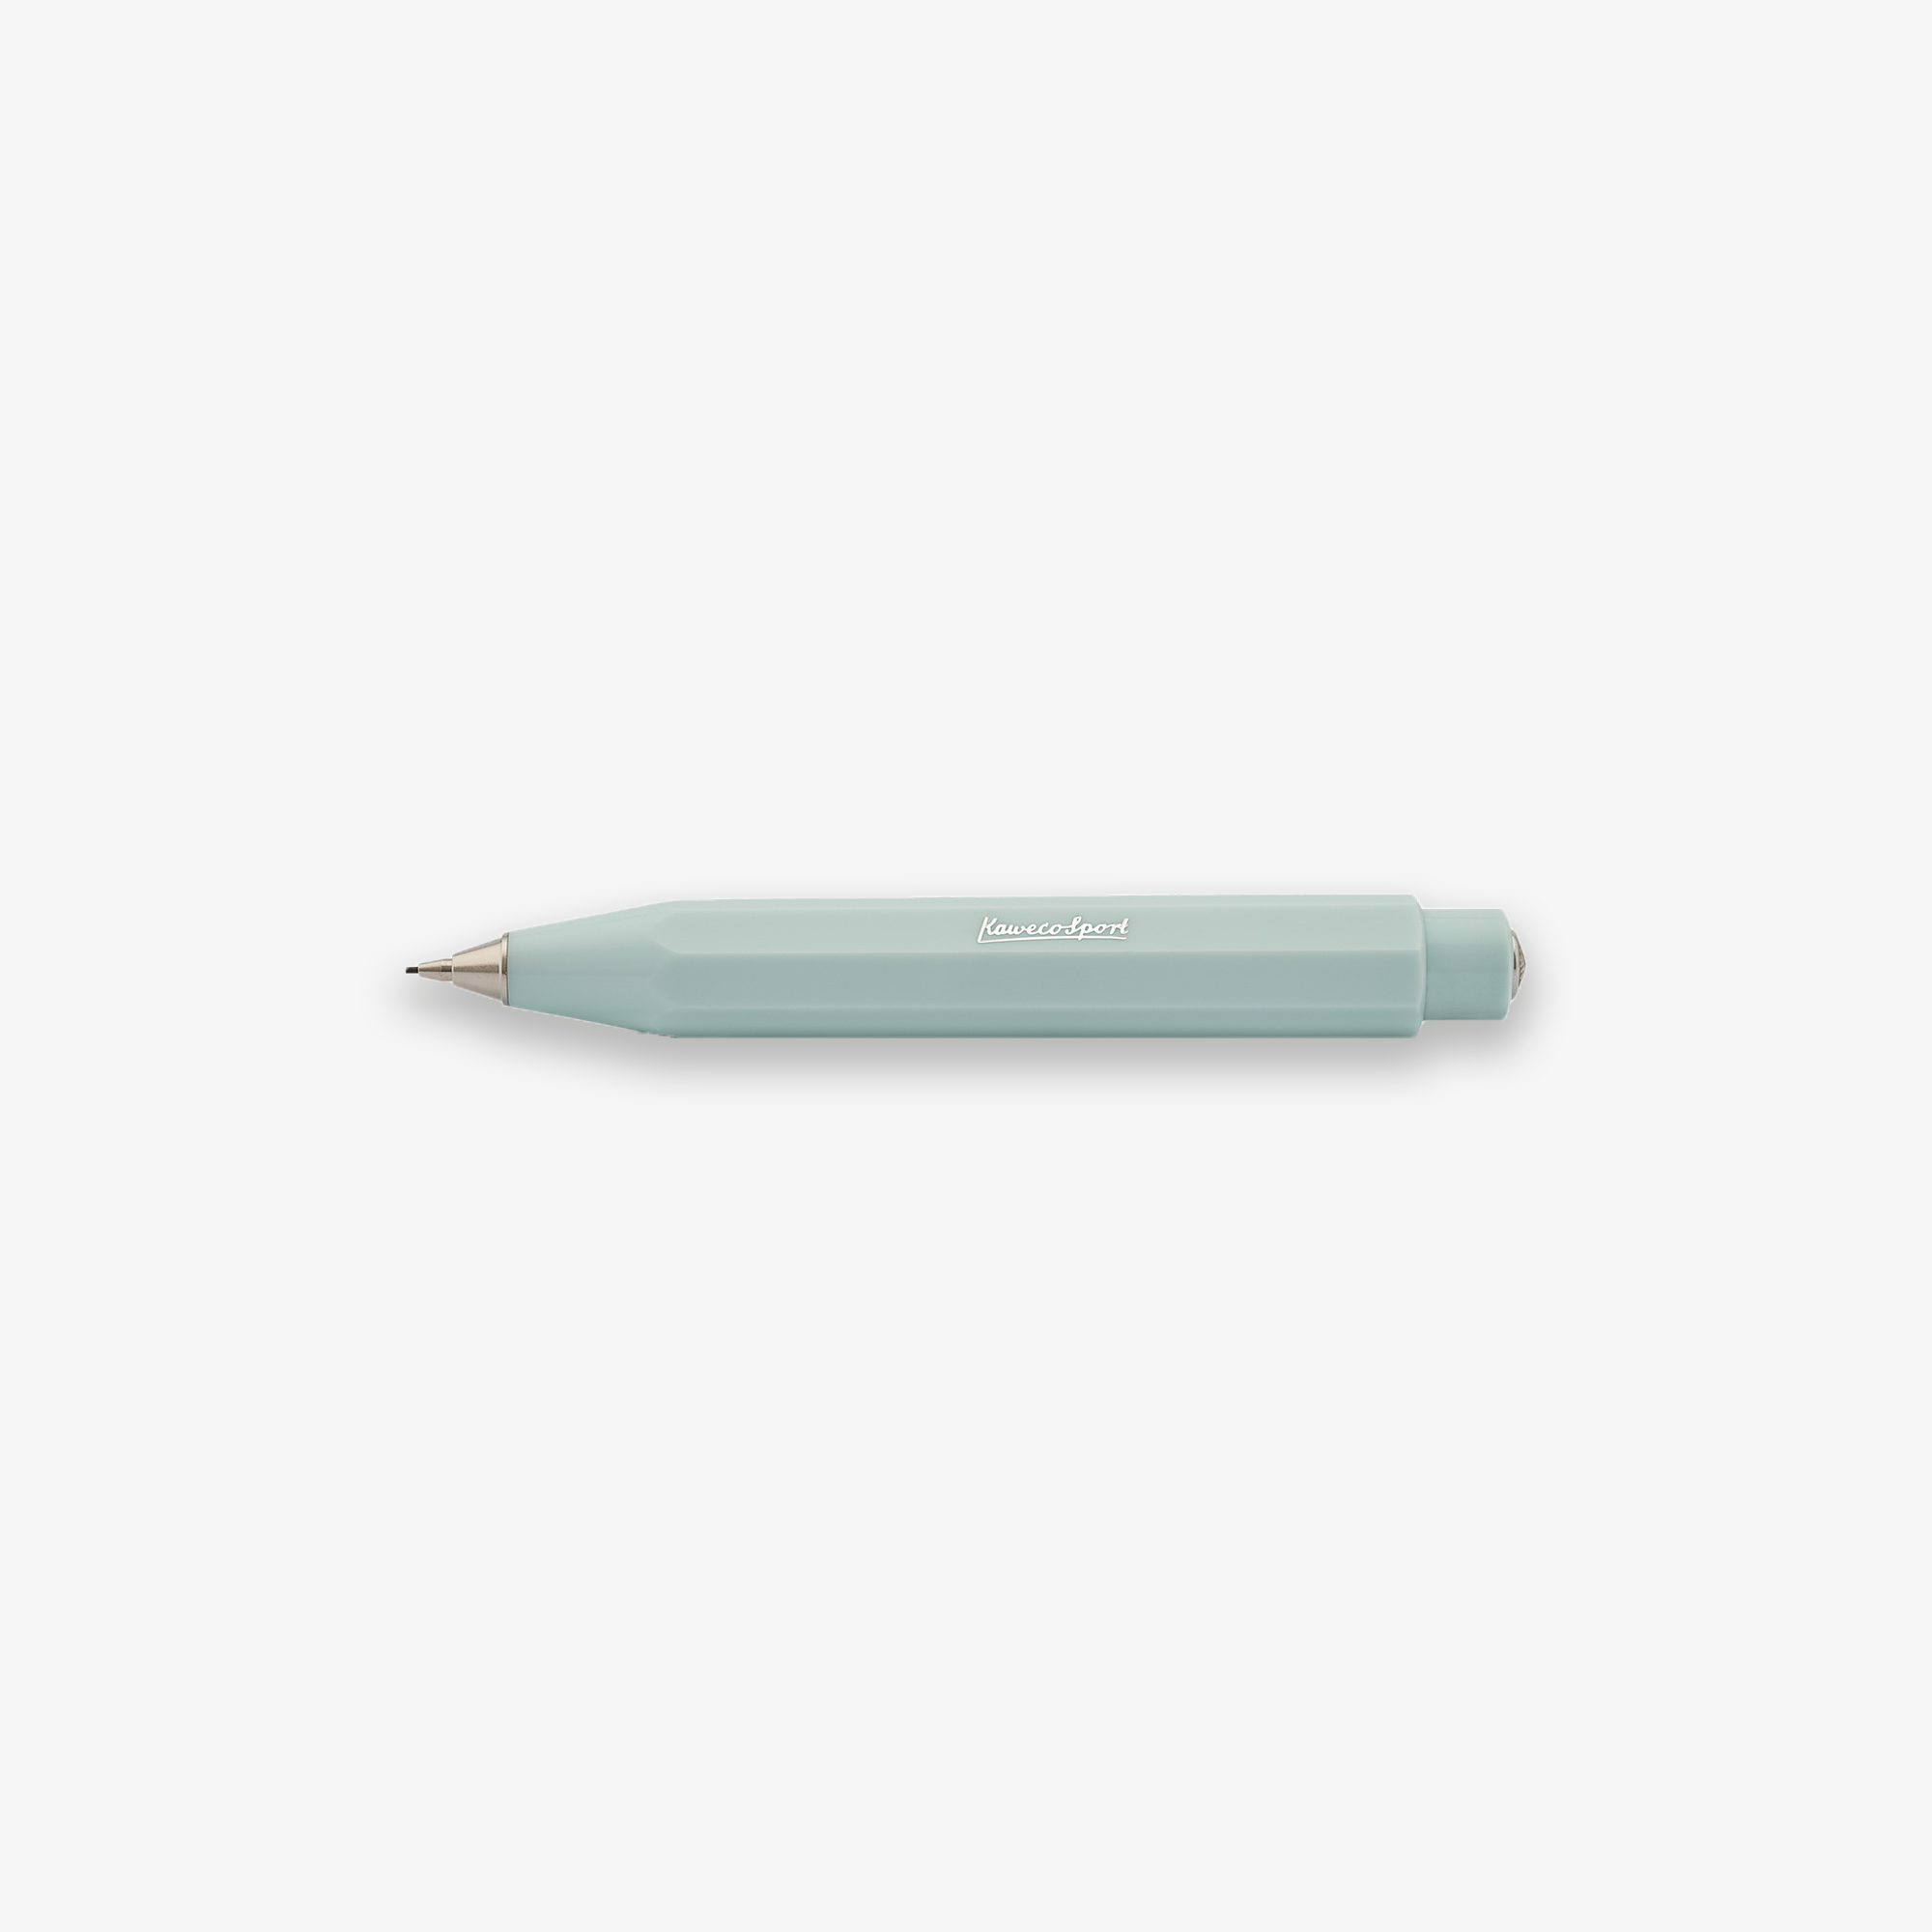 KAWECO CLASSIC SPORT MECHANICAL PENCIL 0.7 mm // MINT